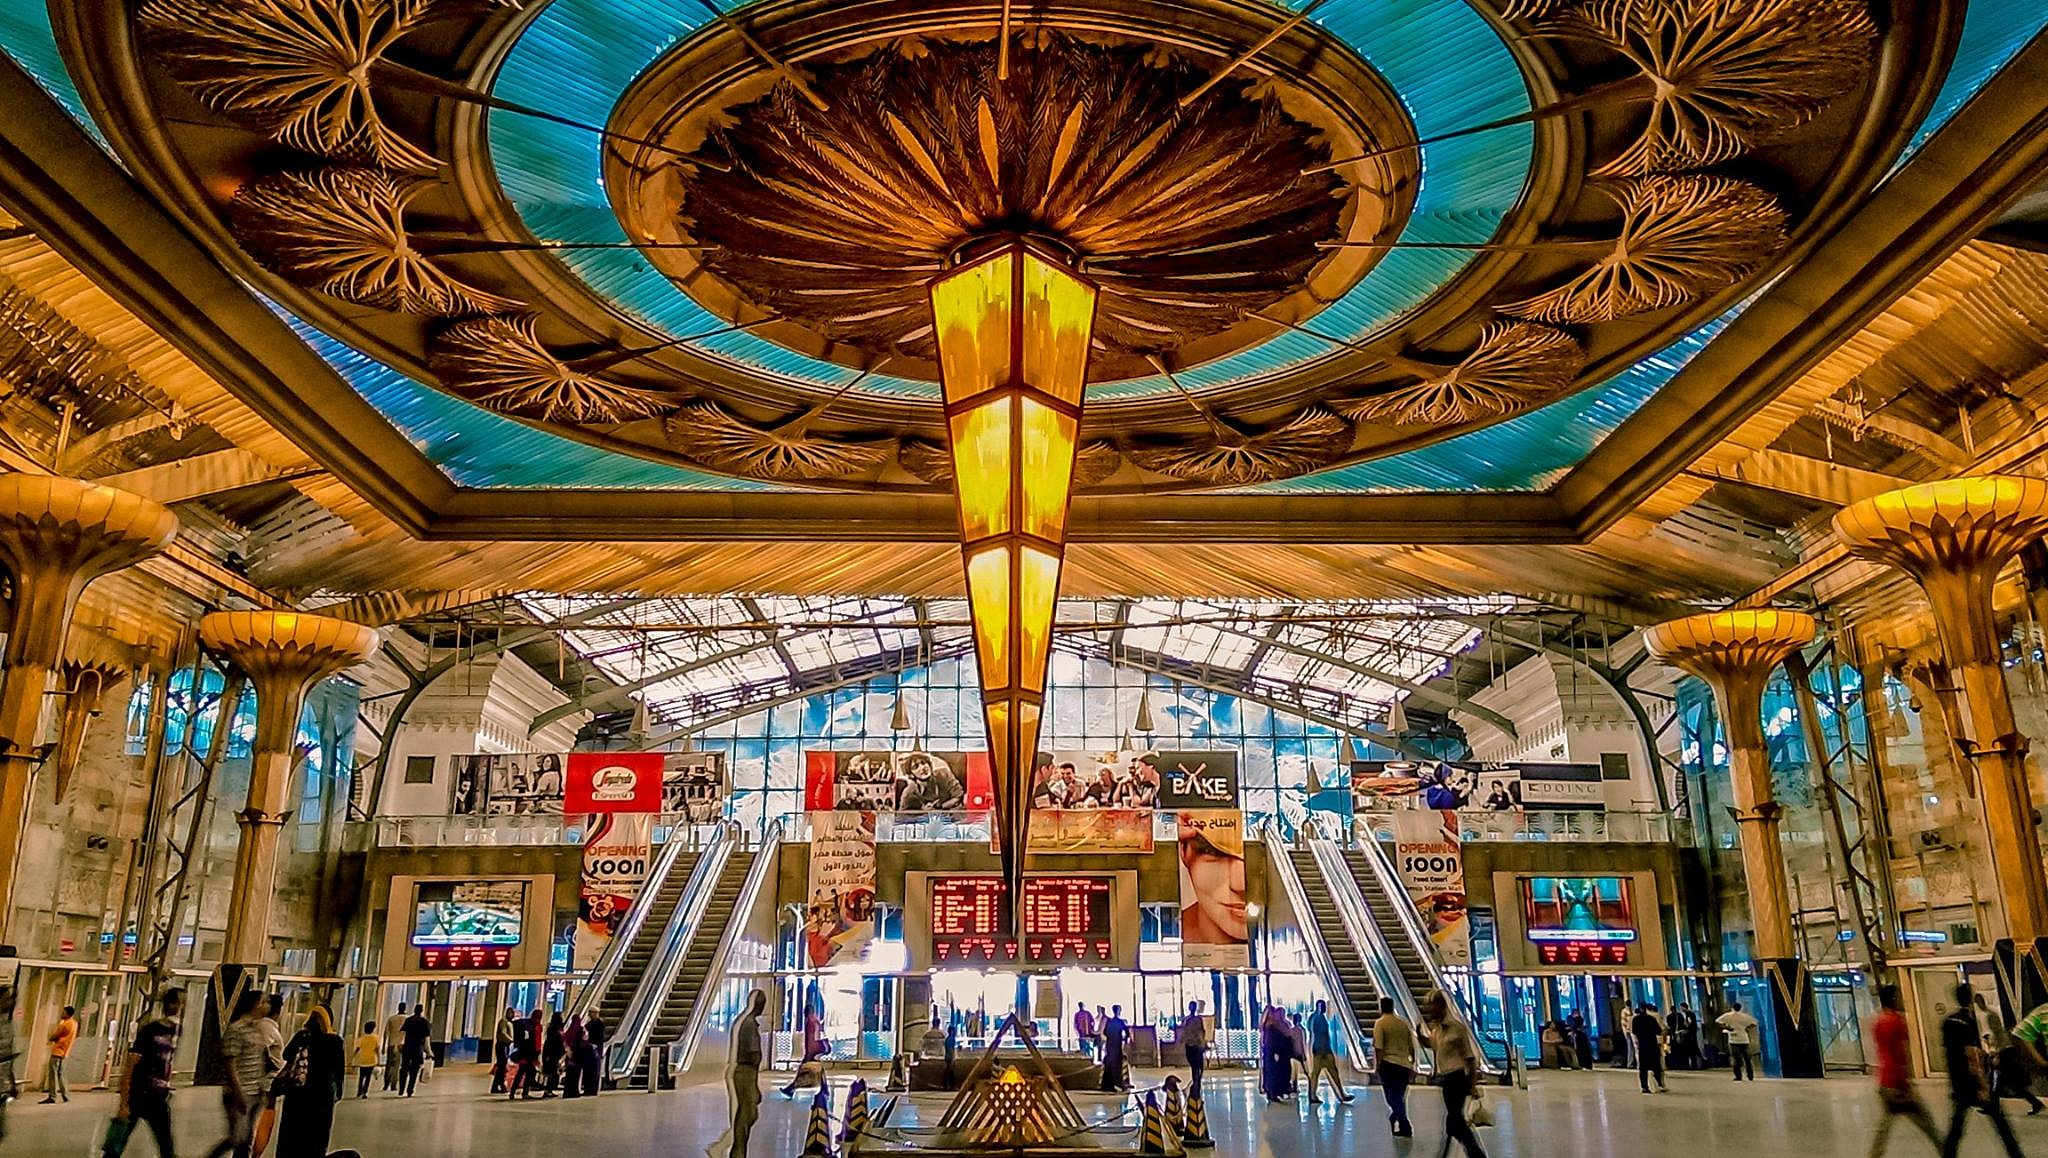 Cairo Station ... EGYPT by Mhmd Gamal